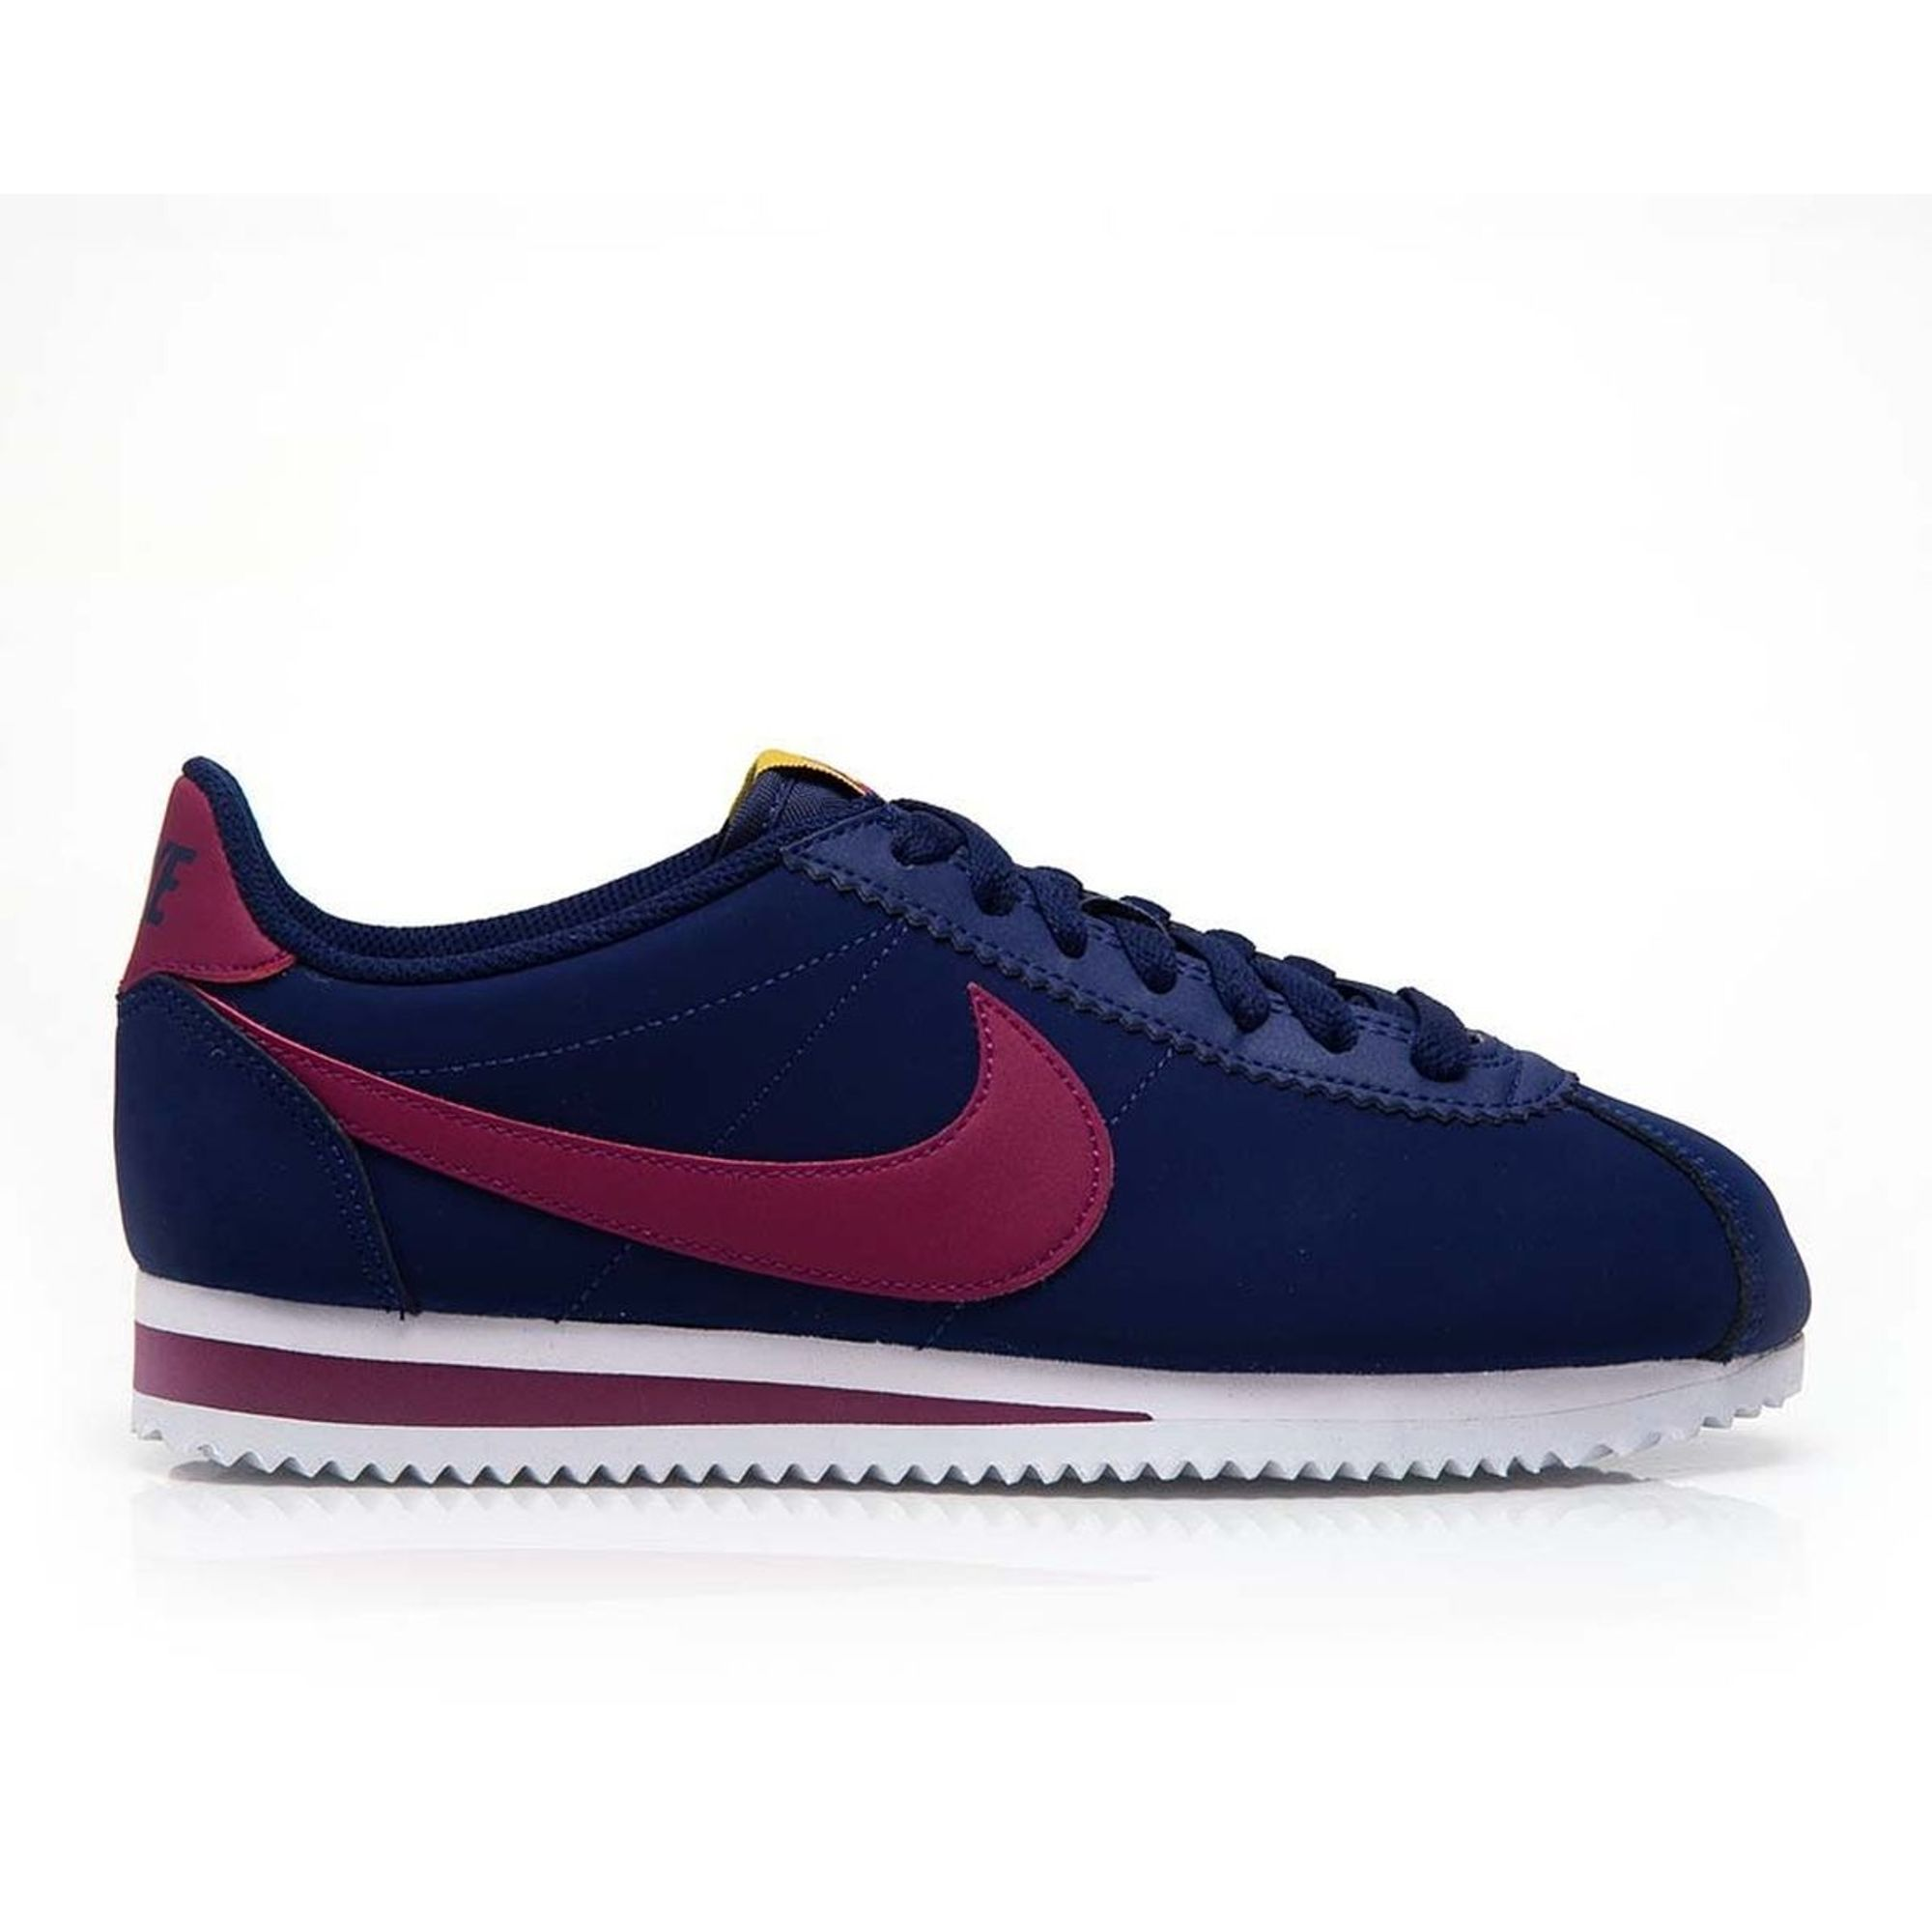 Zapatillas Classic Mujer Mp Para Nike Casuales Cortez Leather SzpUMVq